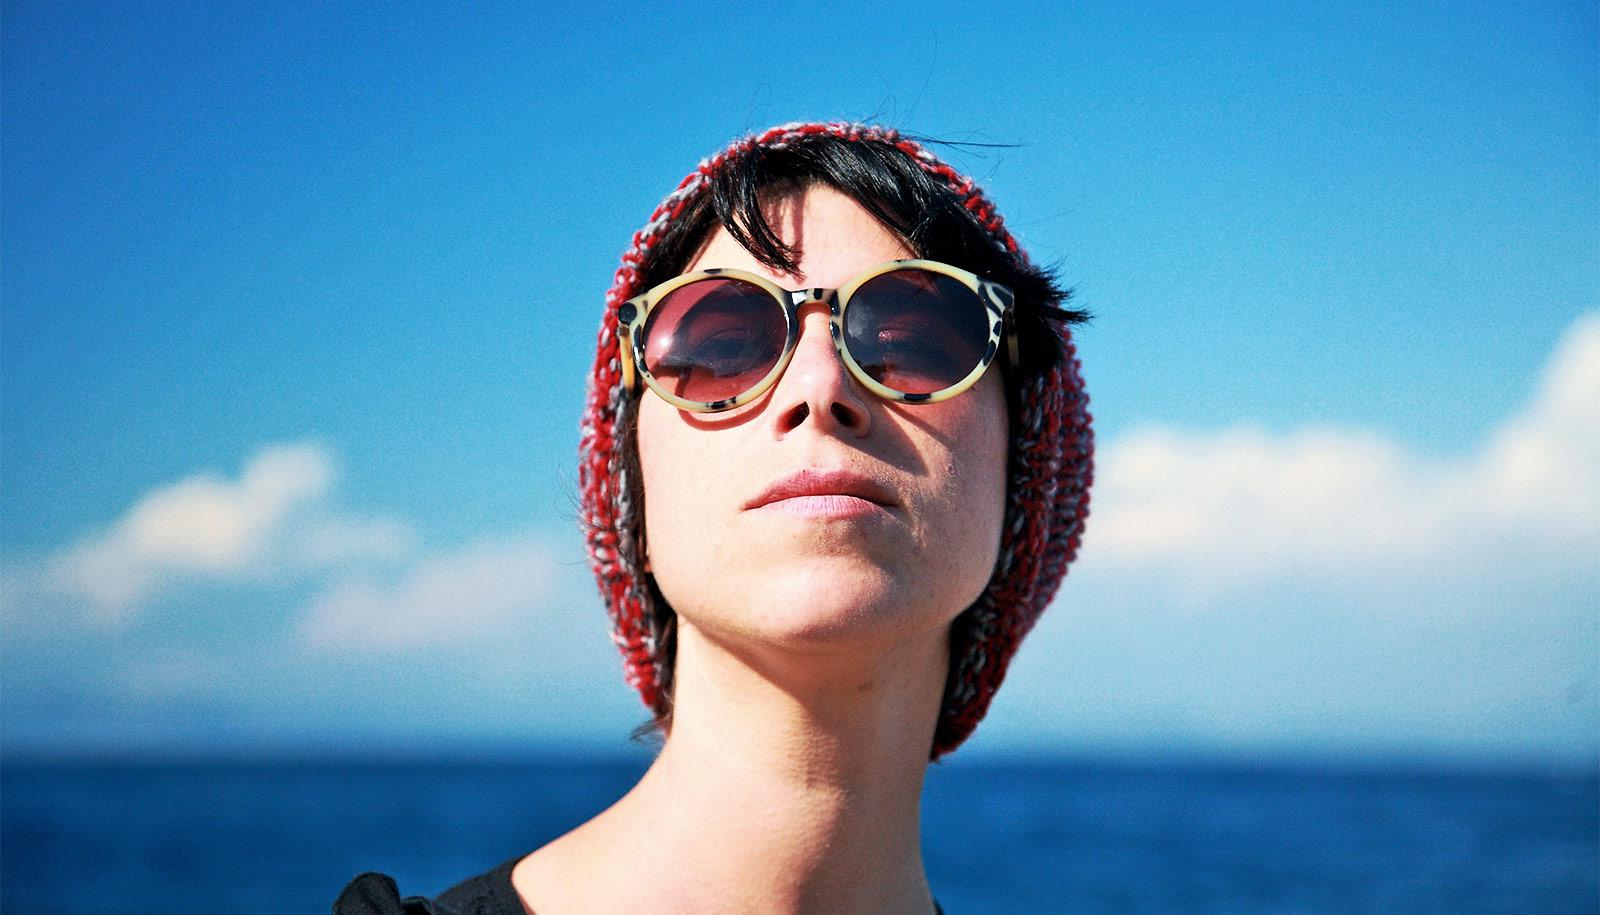 A young woman with a red beanie and red glasses stands outside looking up